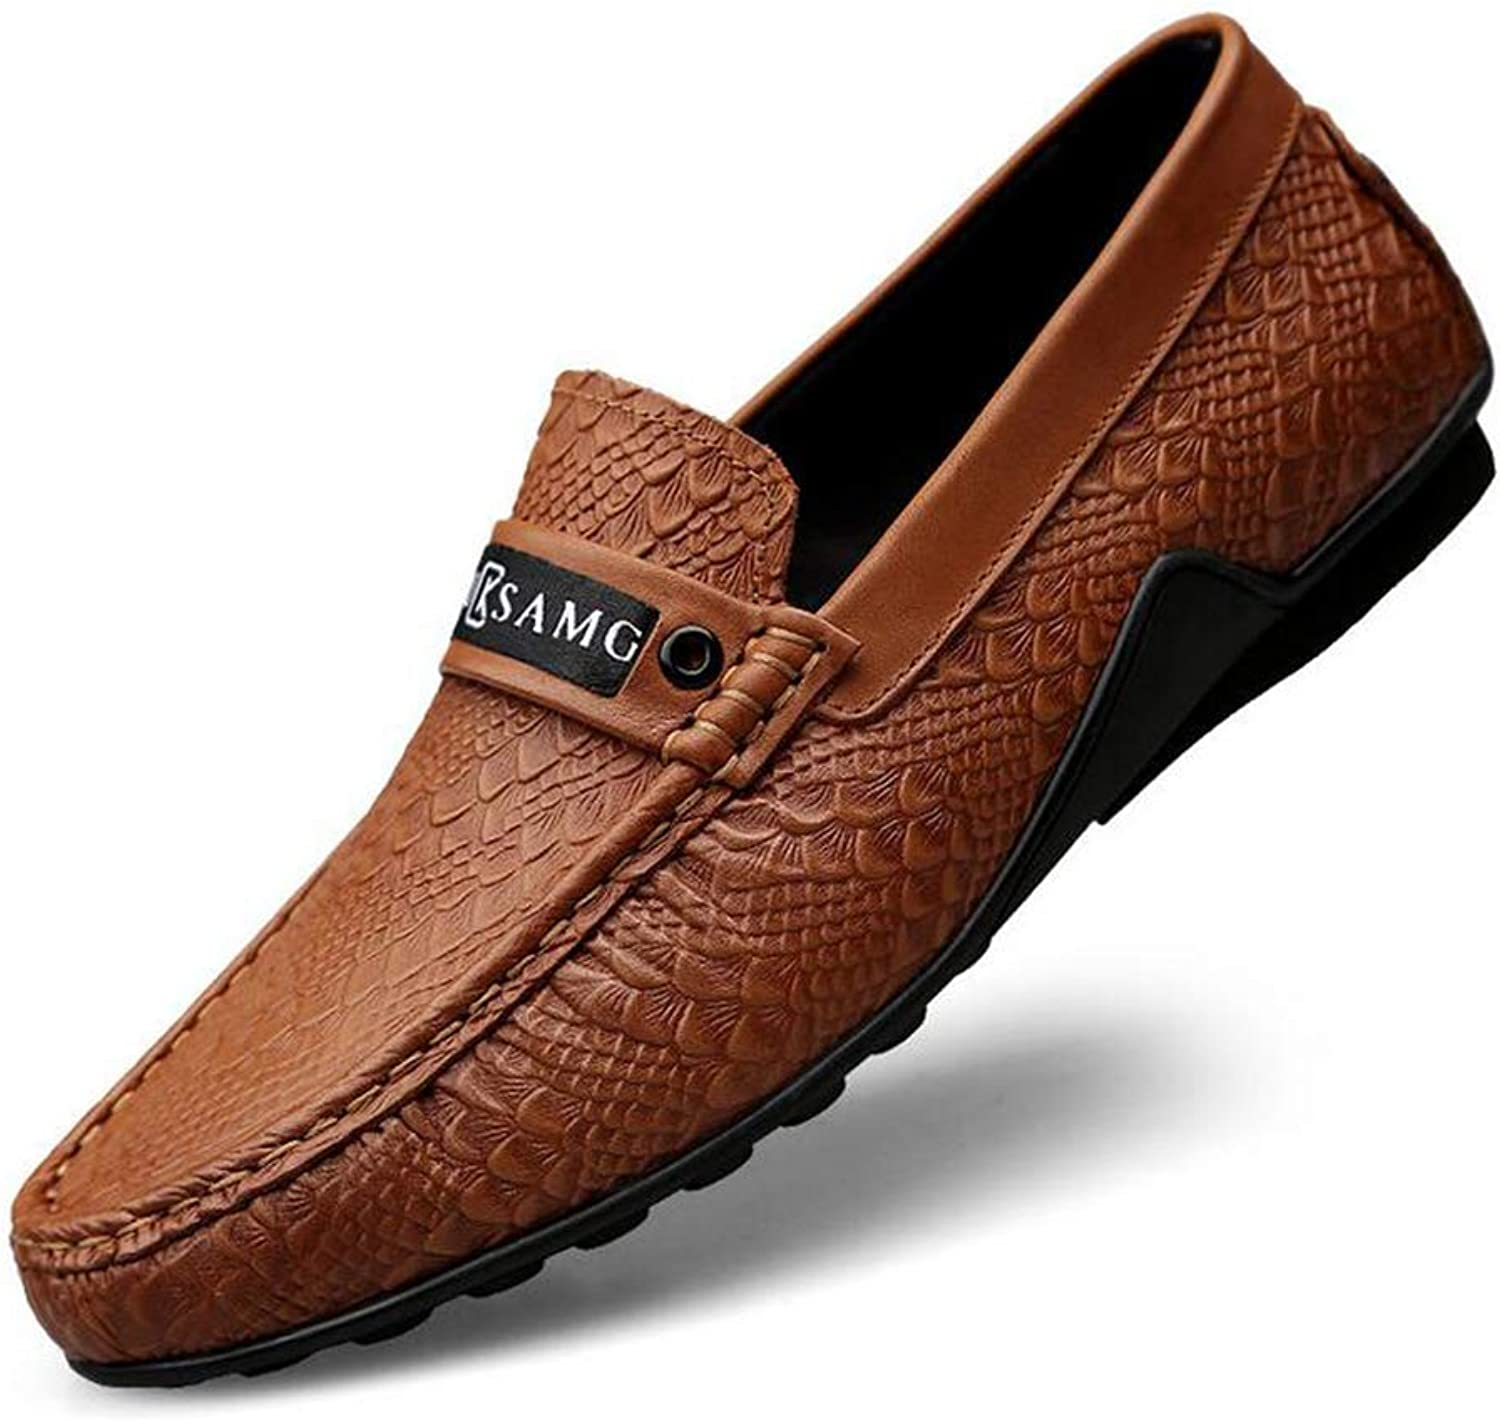 Y-H Men's Casual shoes, Spring New Walking shoes,Loafers & Slip-Ons Lazy shoes Peas shoes Formal Business shoes Office & Career,Brown,46